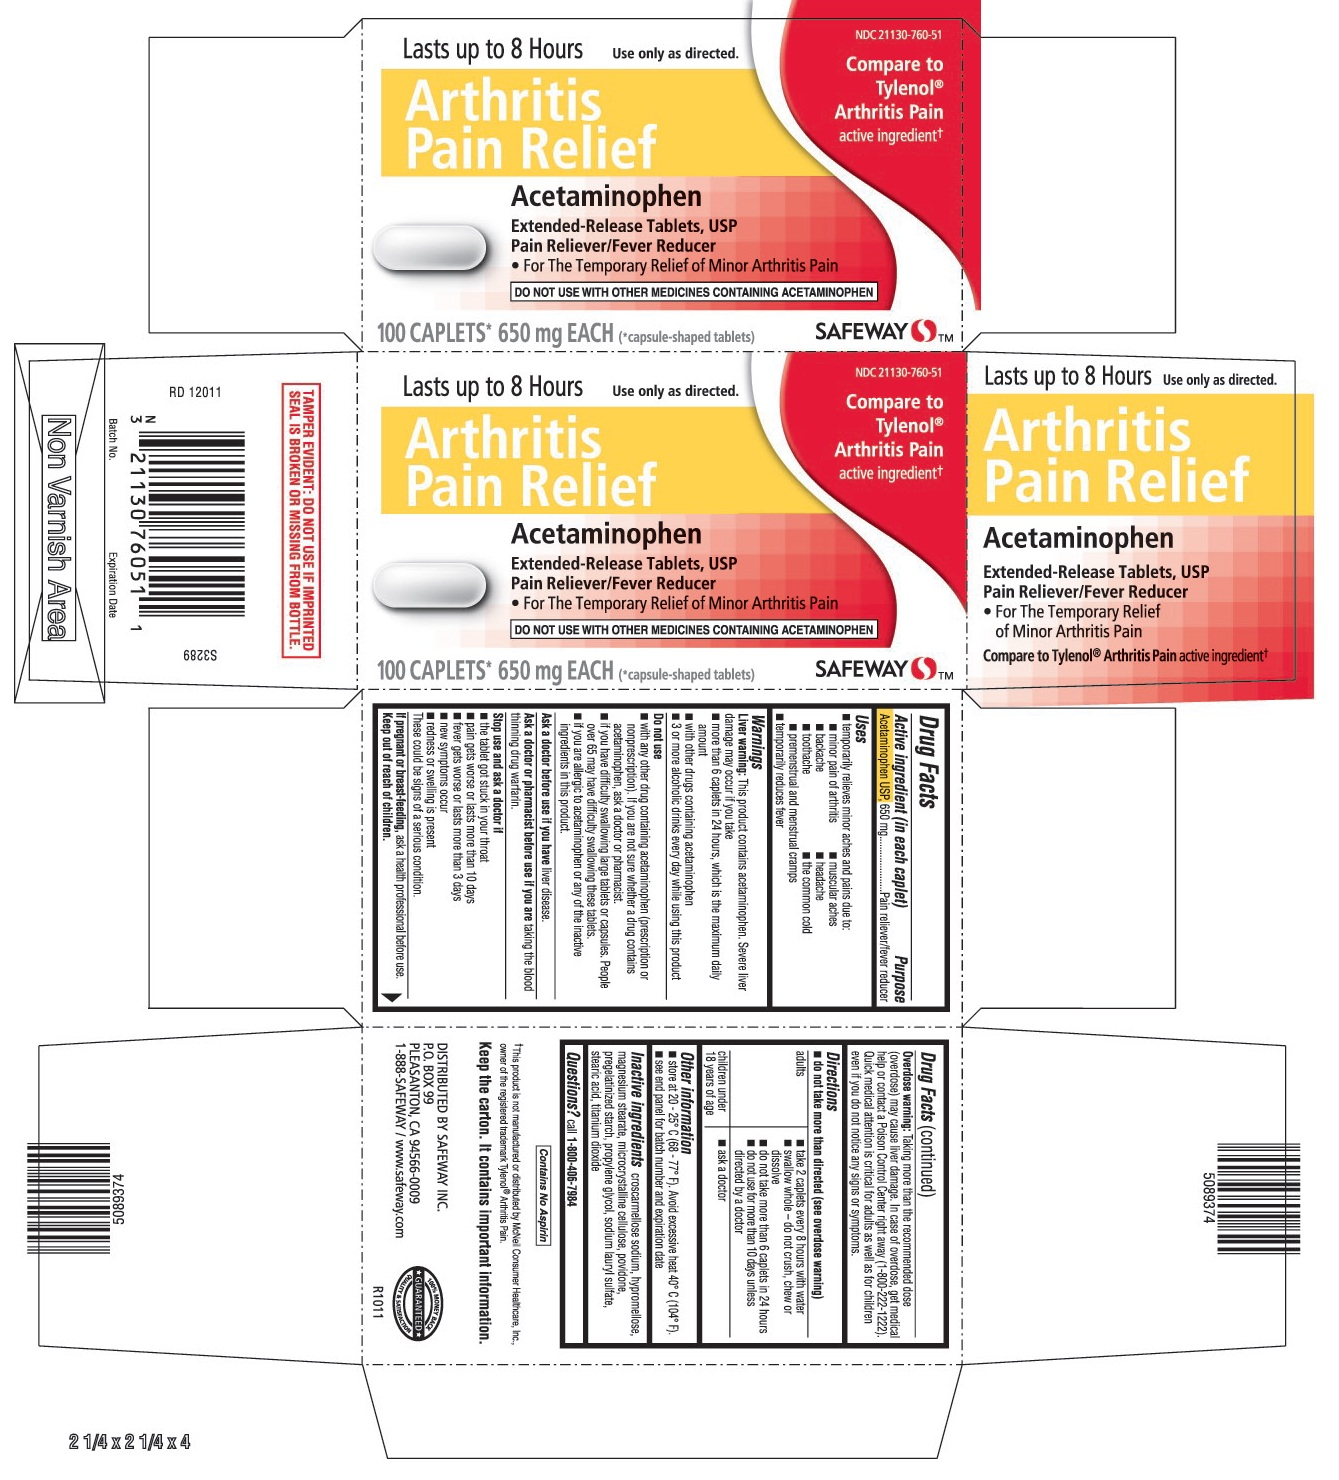 This is the 100 count bottle carton label for Safeway APAP Arthritis.